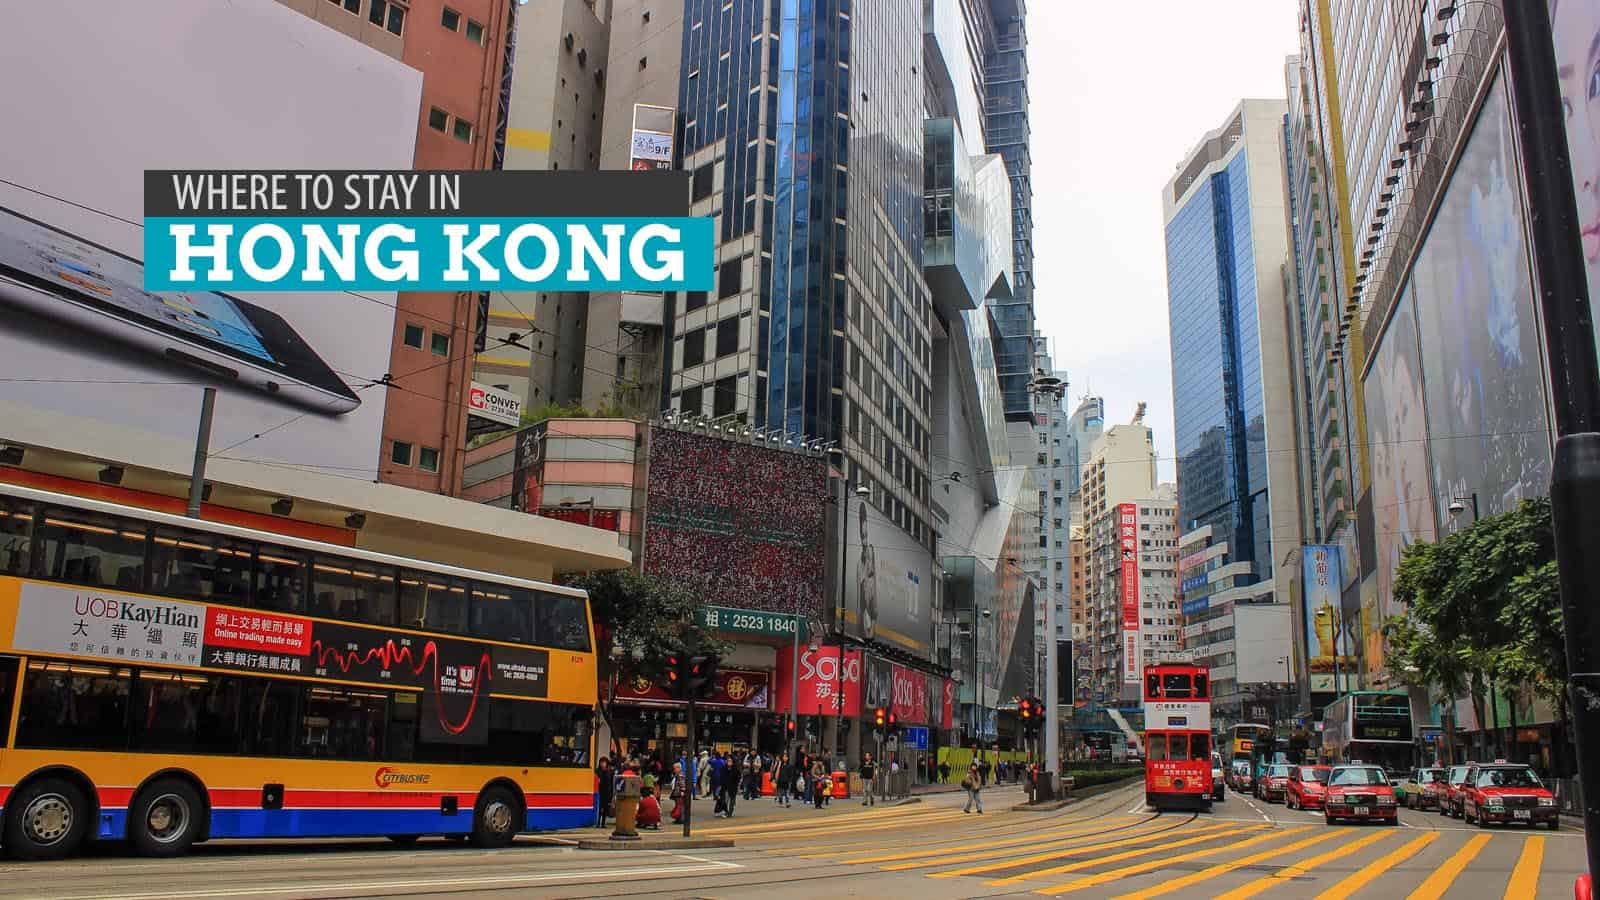 WHERE TO STAY IN HONG KONG: Cheap Hostels and Guesthouses